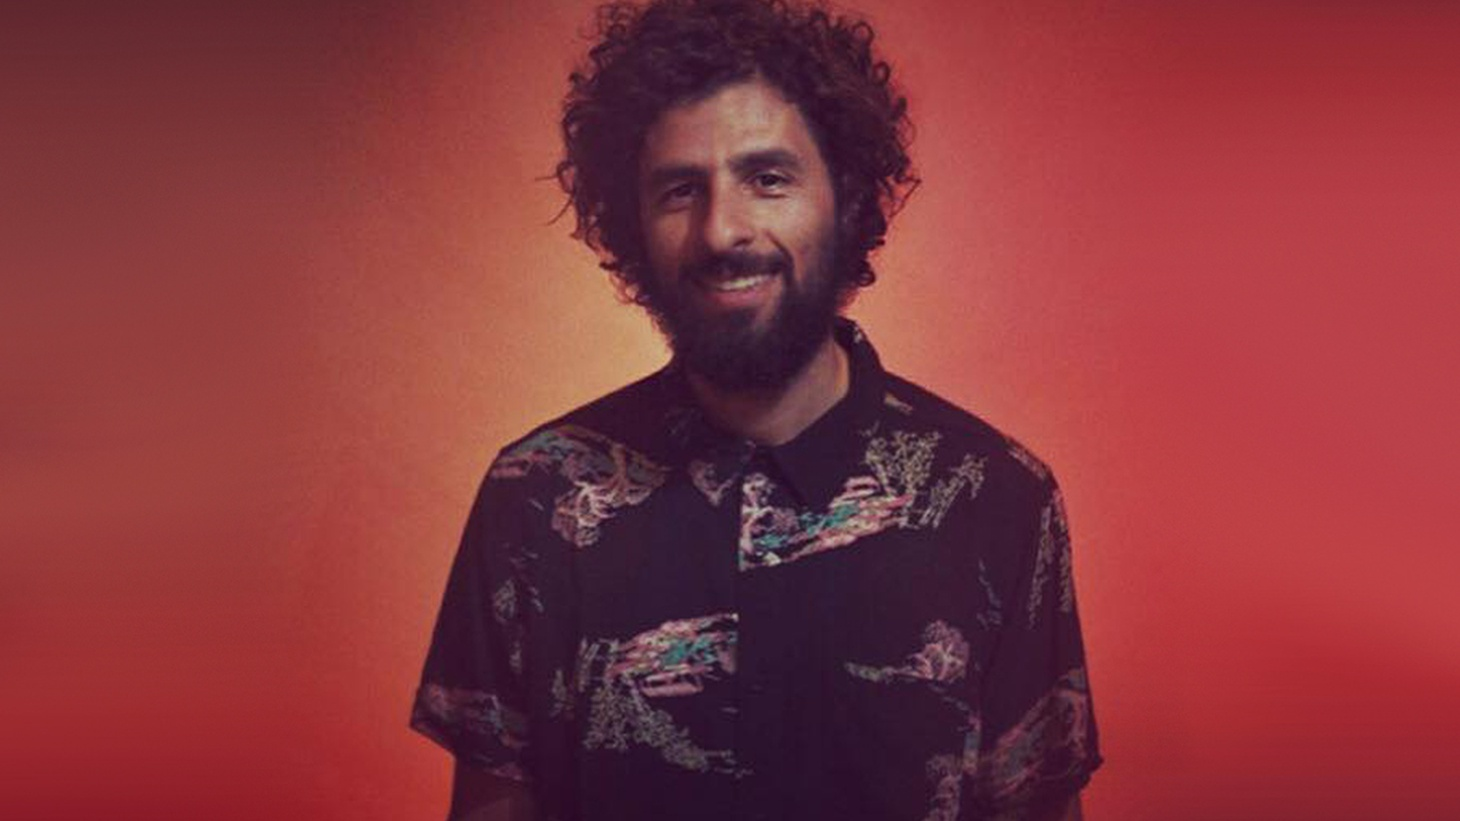 Zero 7 collaborator  Jose Gonzalez  returns armed with his guitar for a solo acoustic performance on Morning Becomes Eclectic at 11:15am.